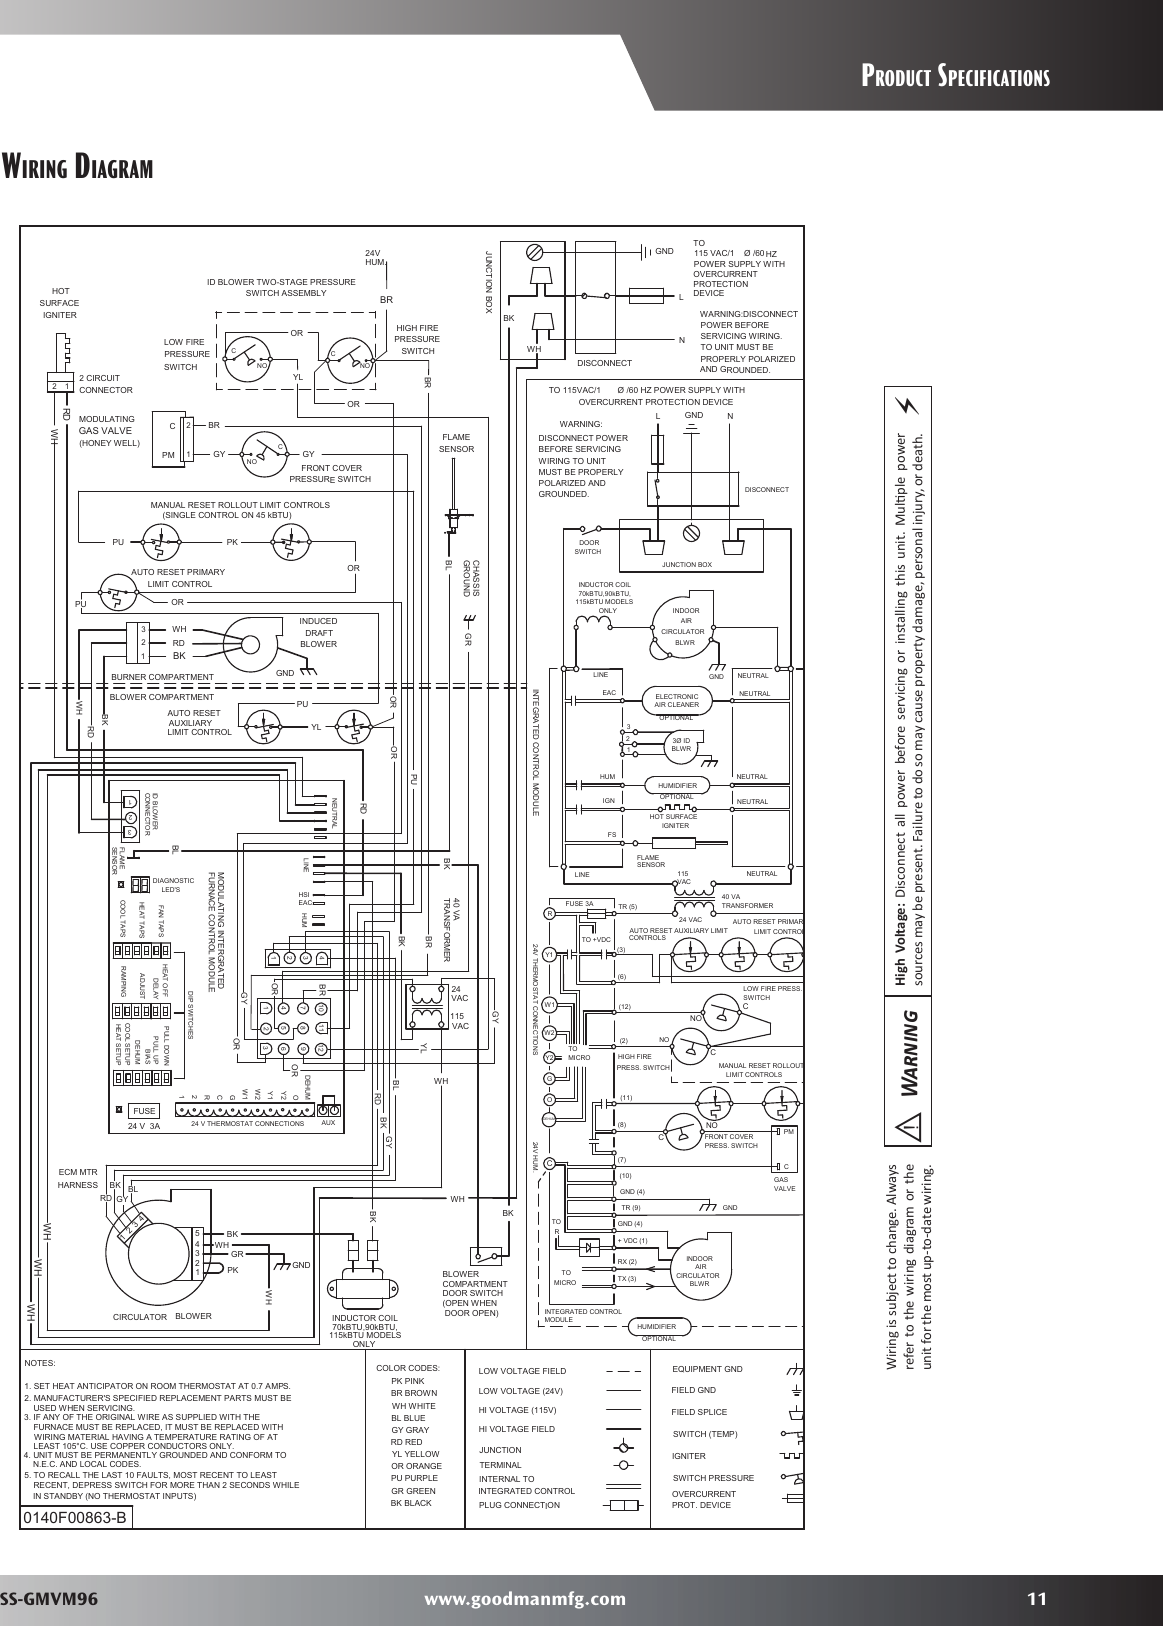 Goodman Mfg Gmvm96 Users Manual Manufacturing Wiring Diagrams Thermostat Page 11 Of 12